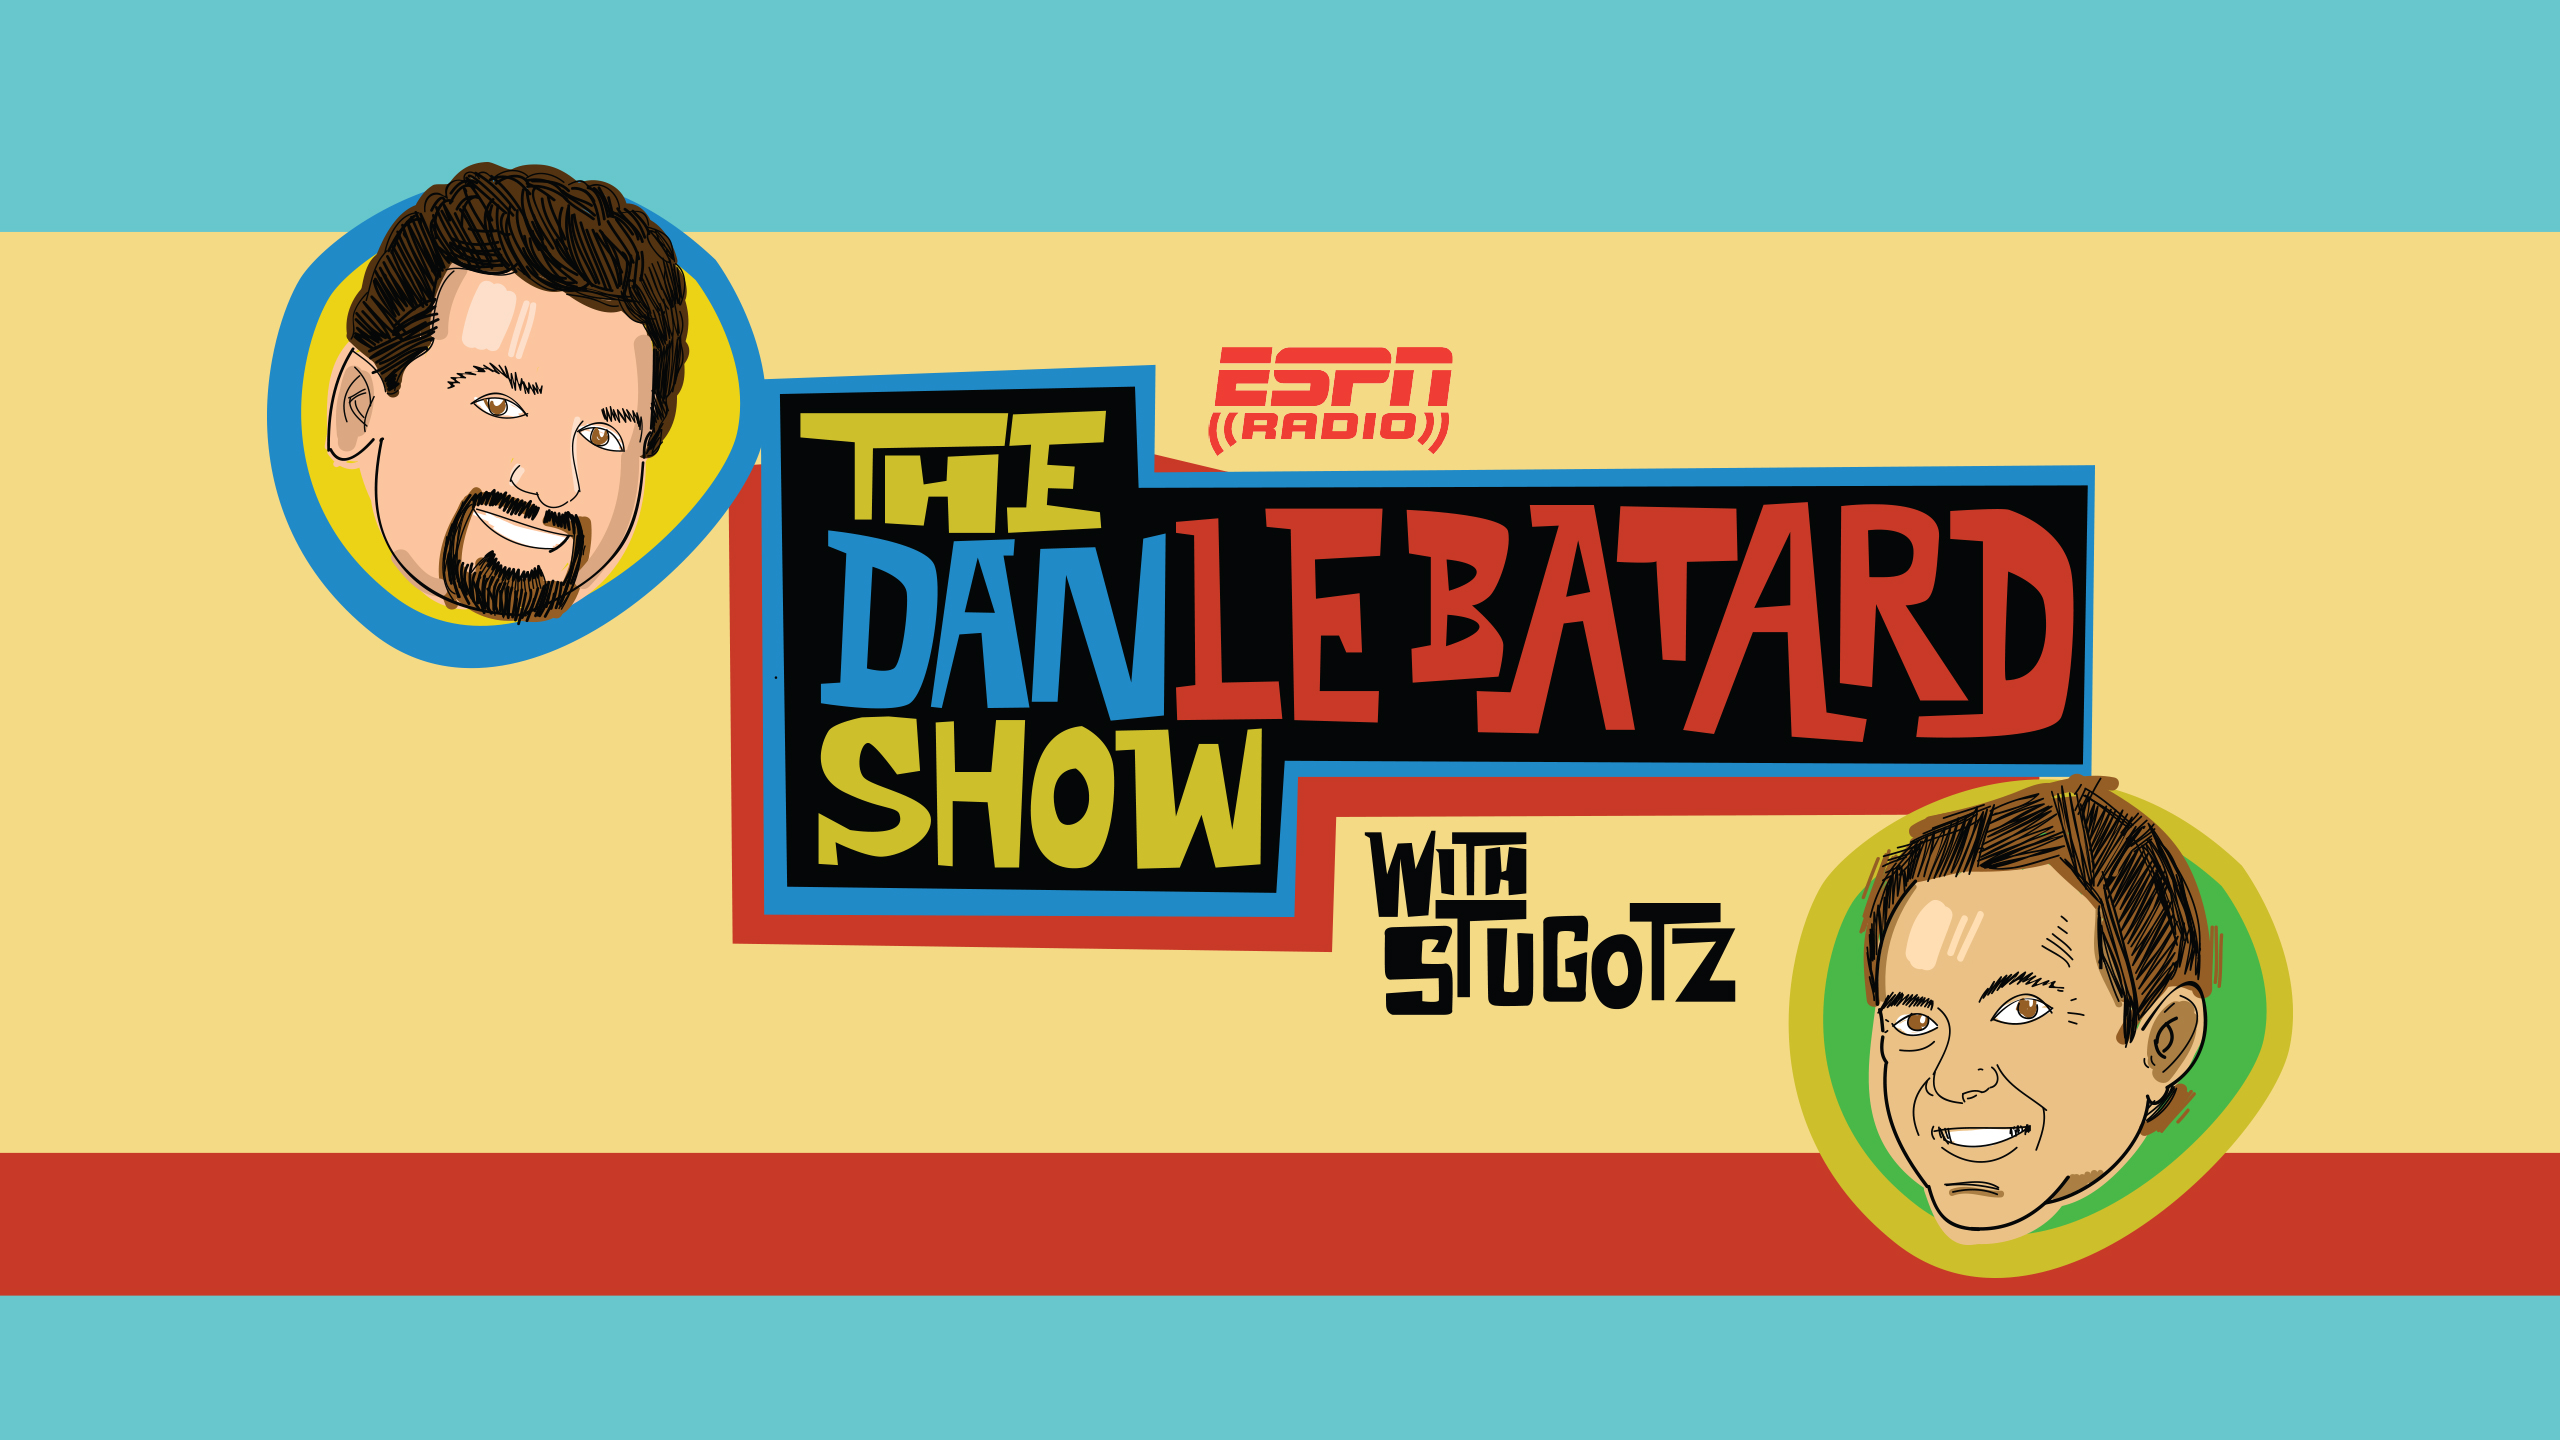 Fri, 10/12 - The Dan Le Batard Show with Stugotz Presented by Progressive